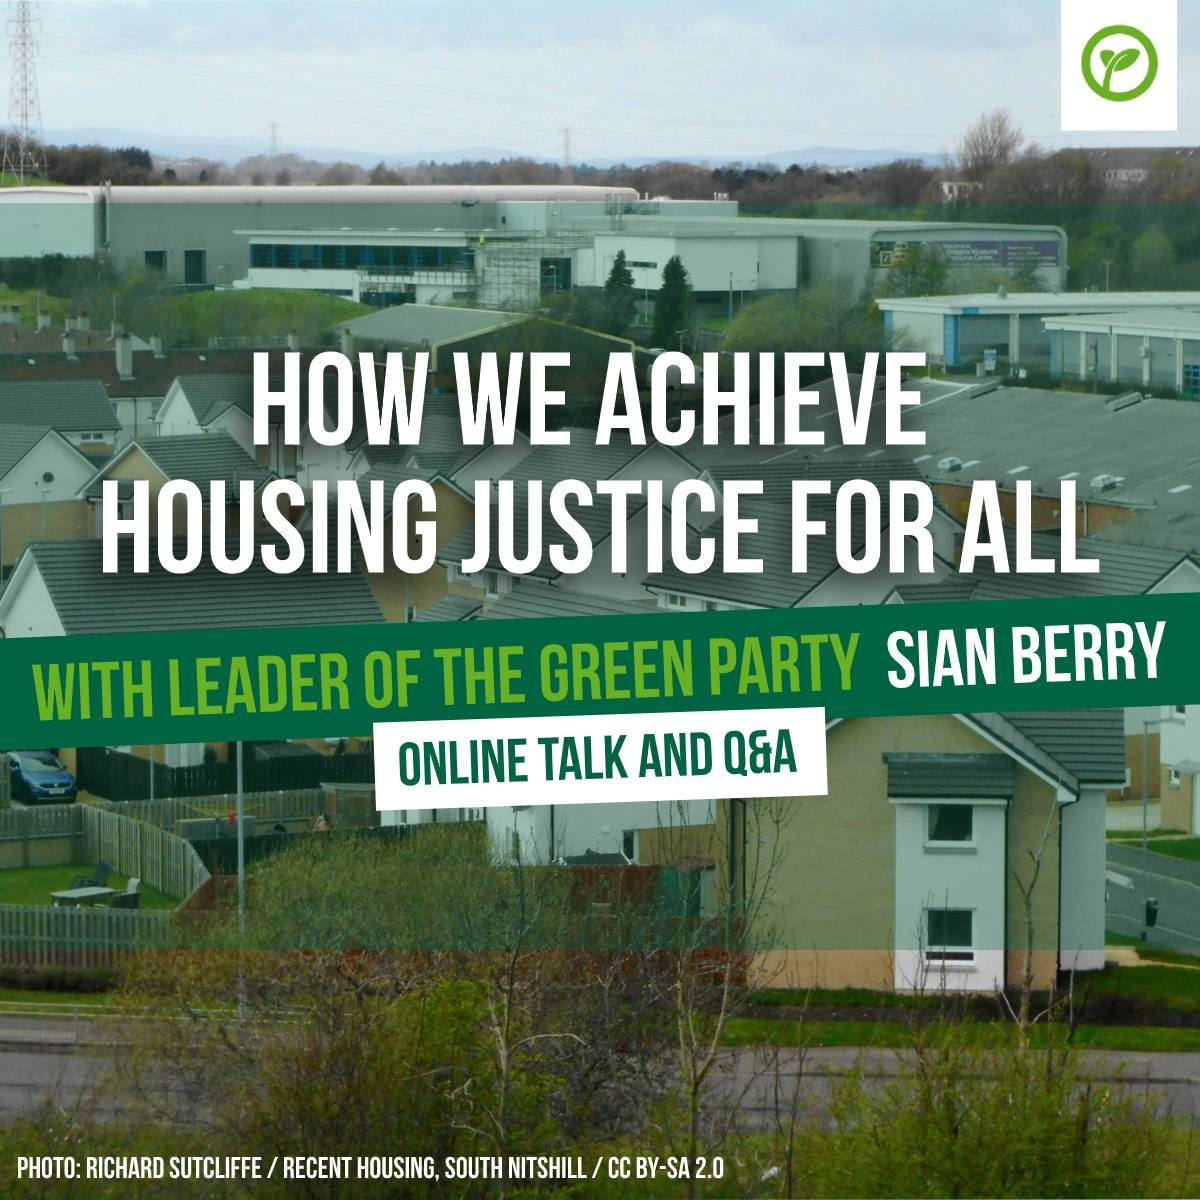 How we achieve housing justice for all with leader of the green party Sian Berry - Online Talk and Q&A. Photo: Richard Sutcliffe / Recent housing, South Nitshill / CC BY-SA 2.0